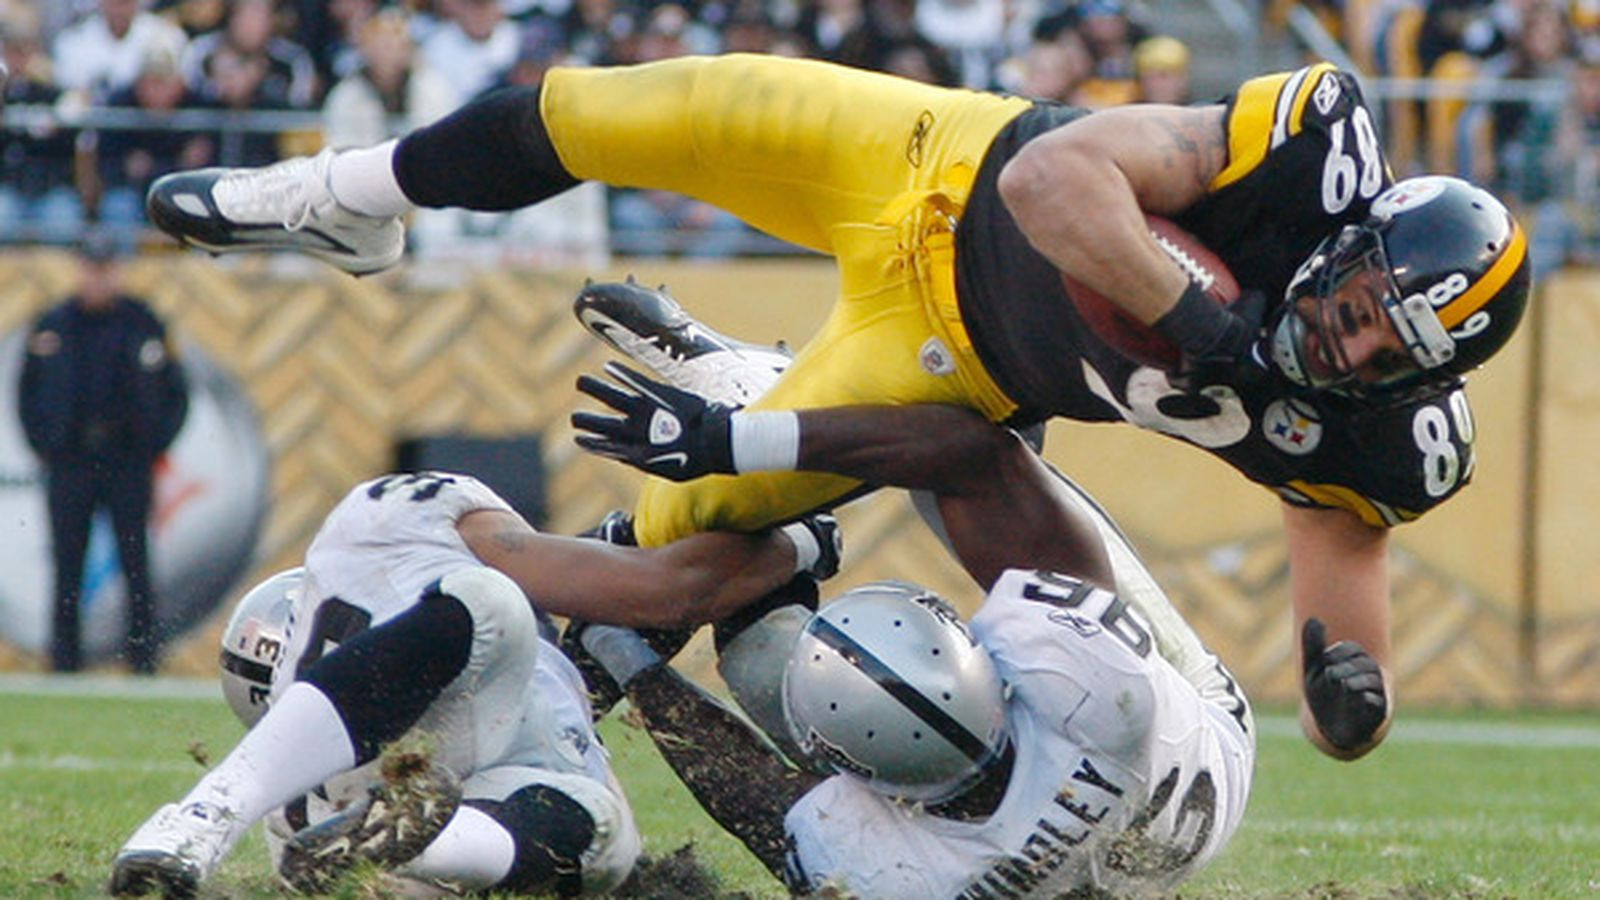 A look at the Steelers Offensive depth chart